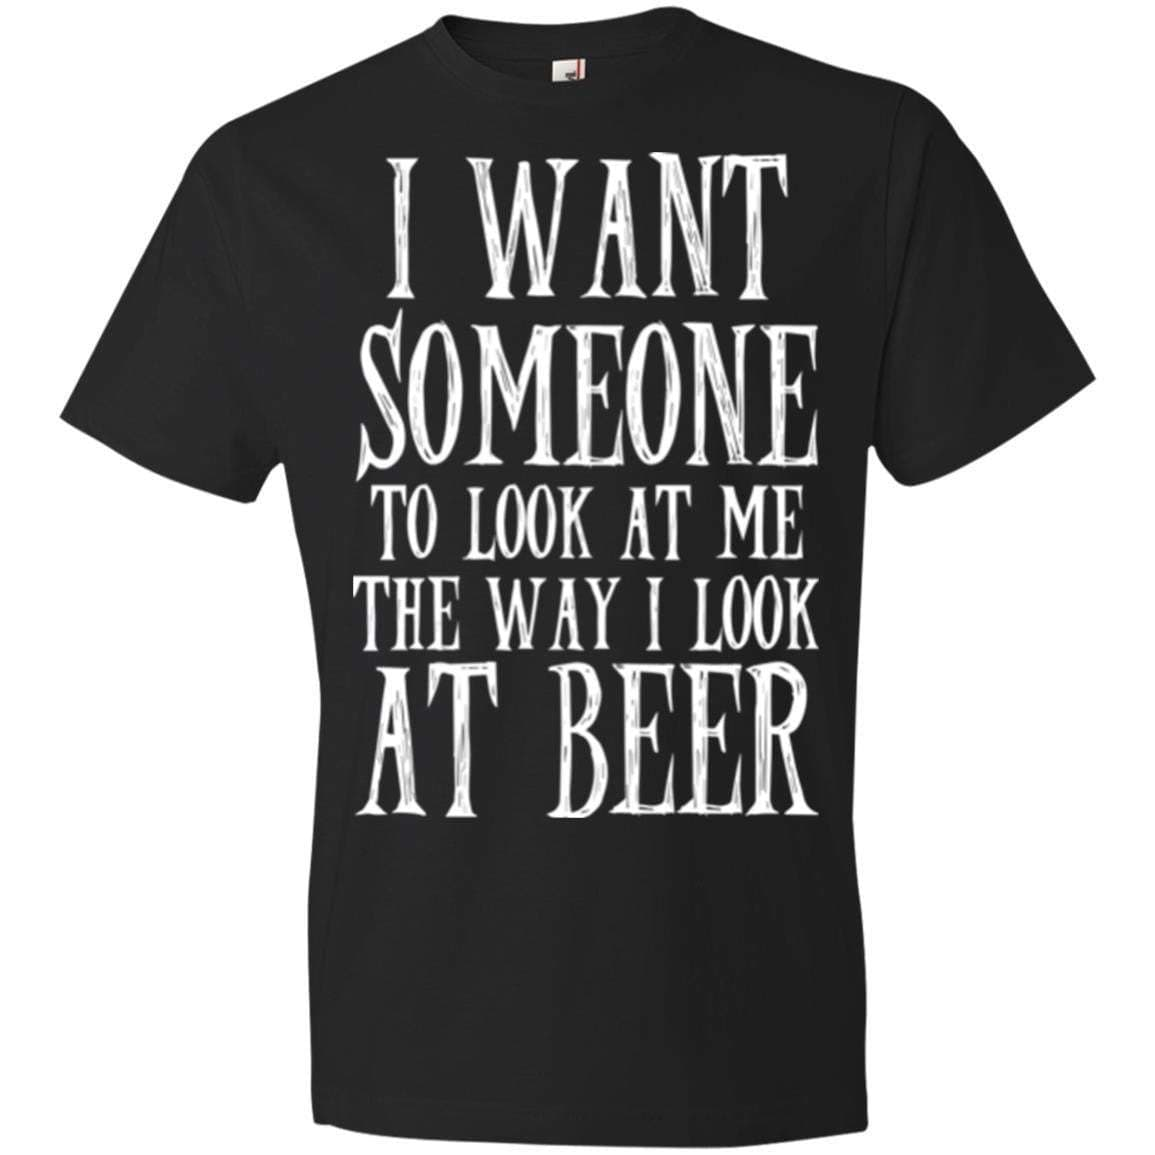 Look At Me Like Beer